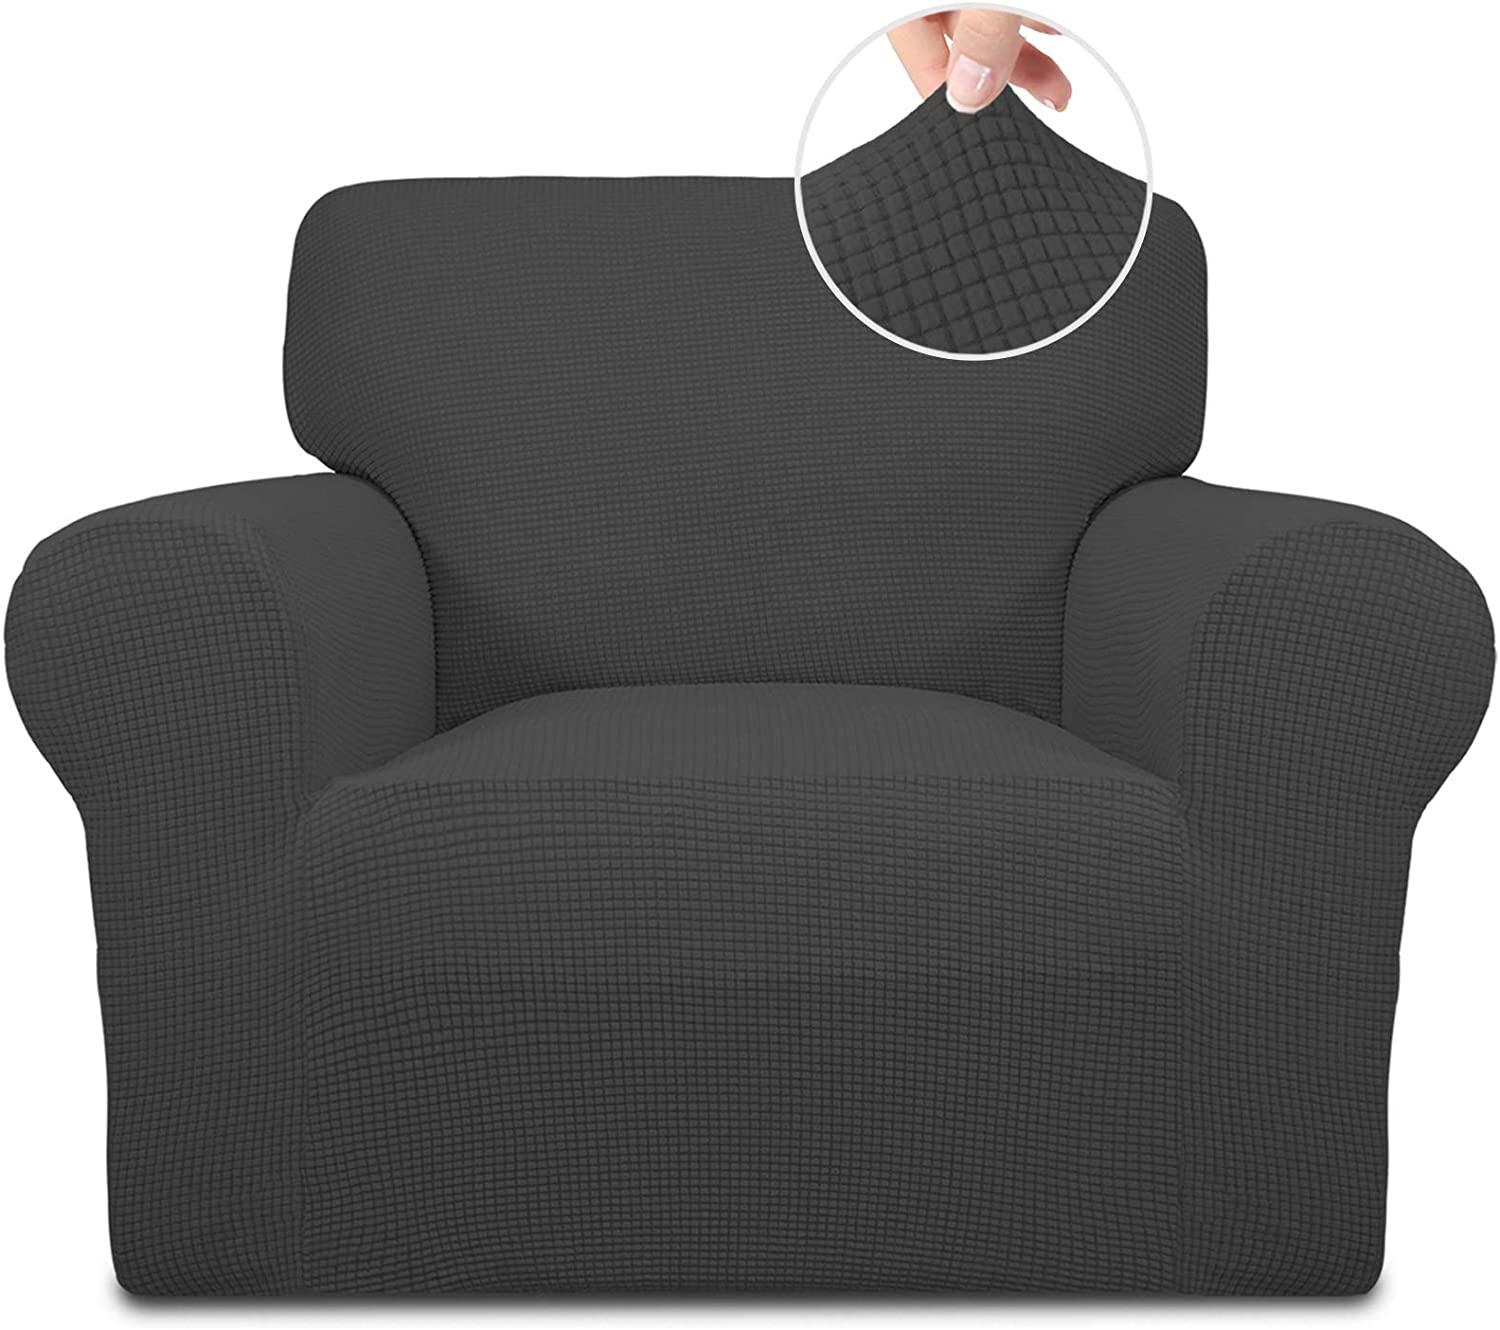 Easy-Going Stretch Chair Sofa Slipcover 1-Piece Couch Sofa Cover Furniture Protector Soft with Elastic Bottom for Kids. Spandex Jacquard Fabric Small Checks(Chair,Dark Gray): Kitchen & Dining